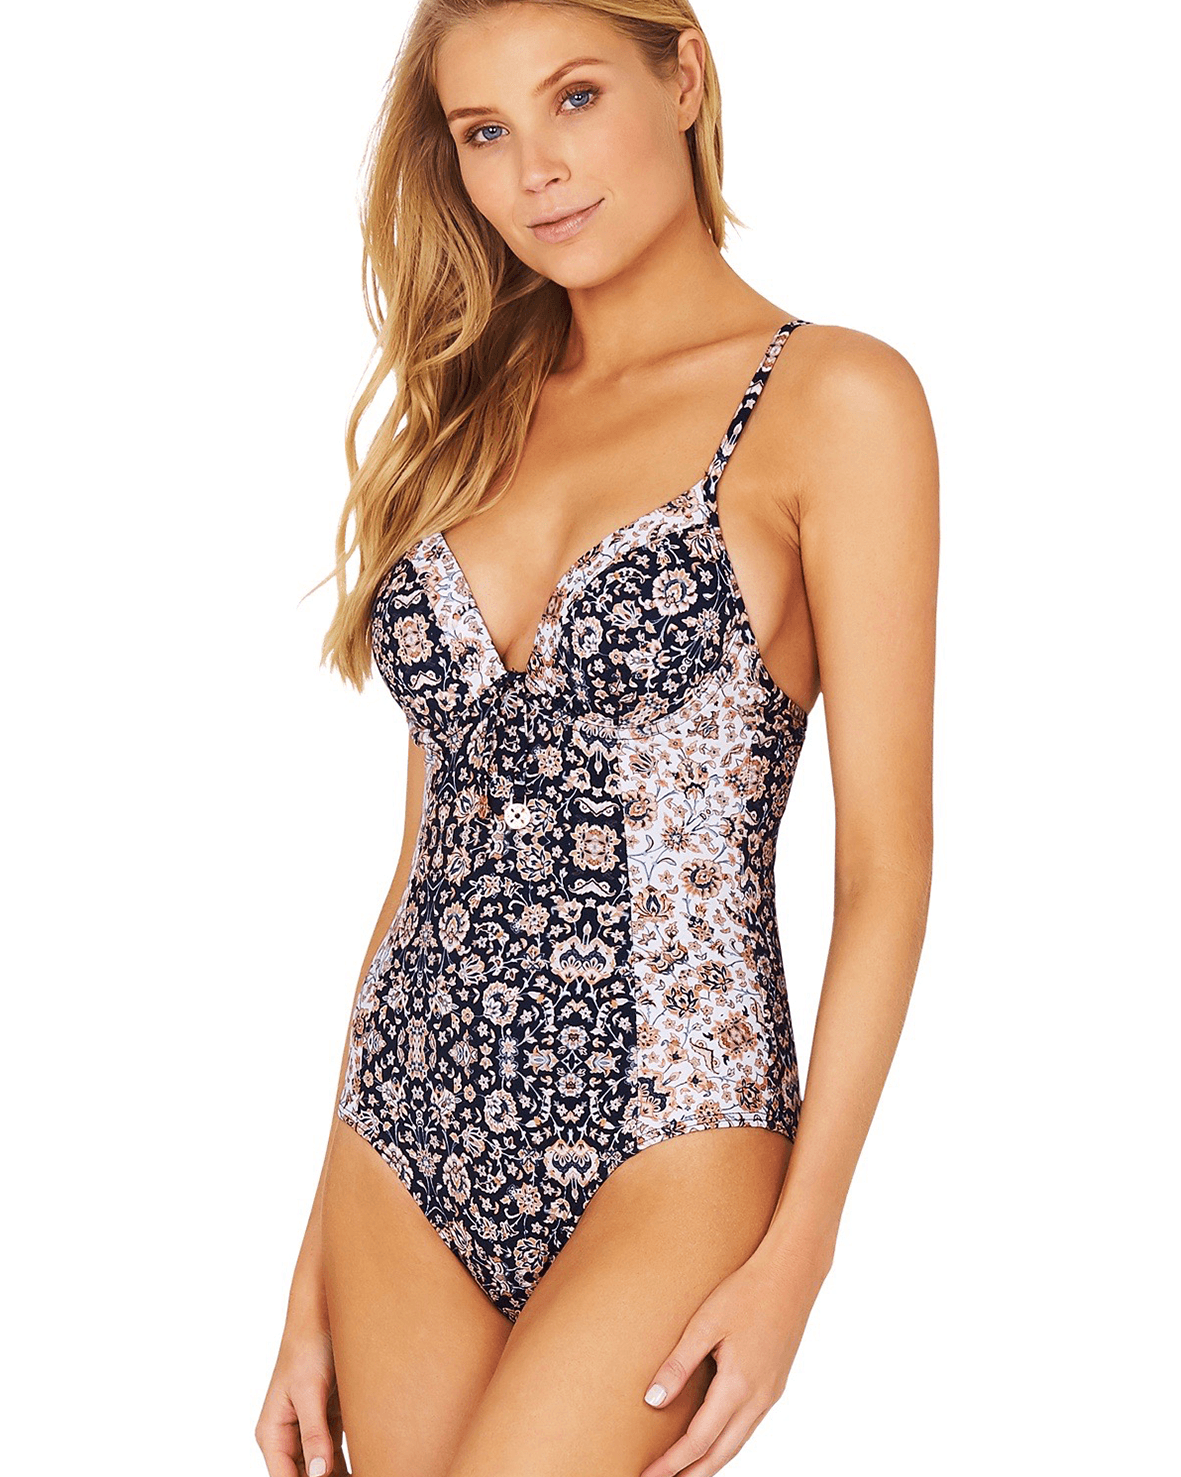 INDOCHINE BOOSTER ONE PIECE SWIMSUIT